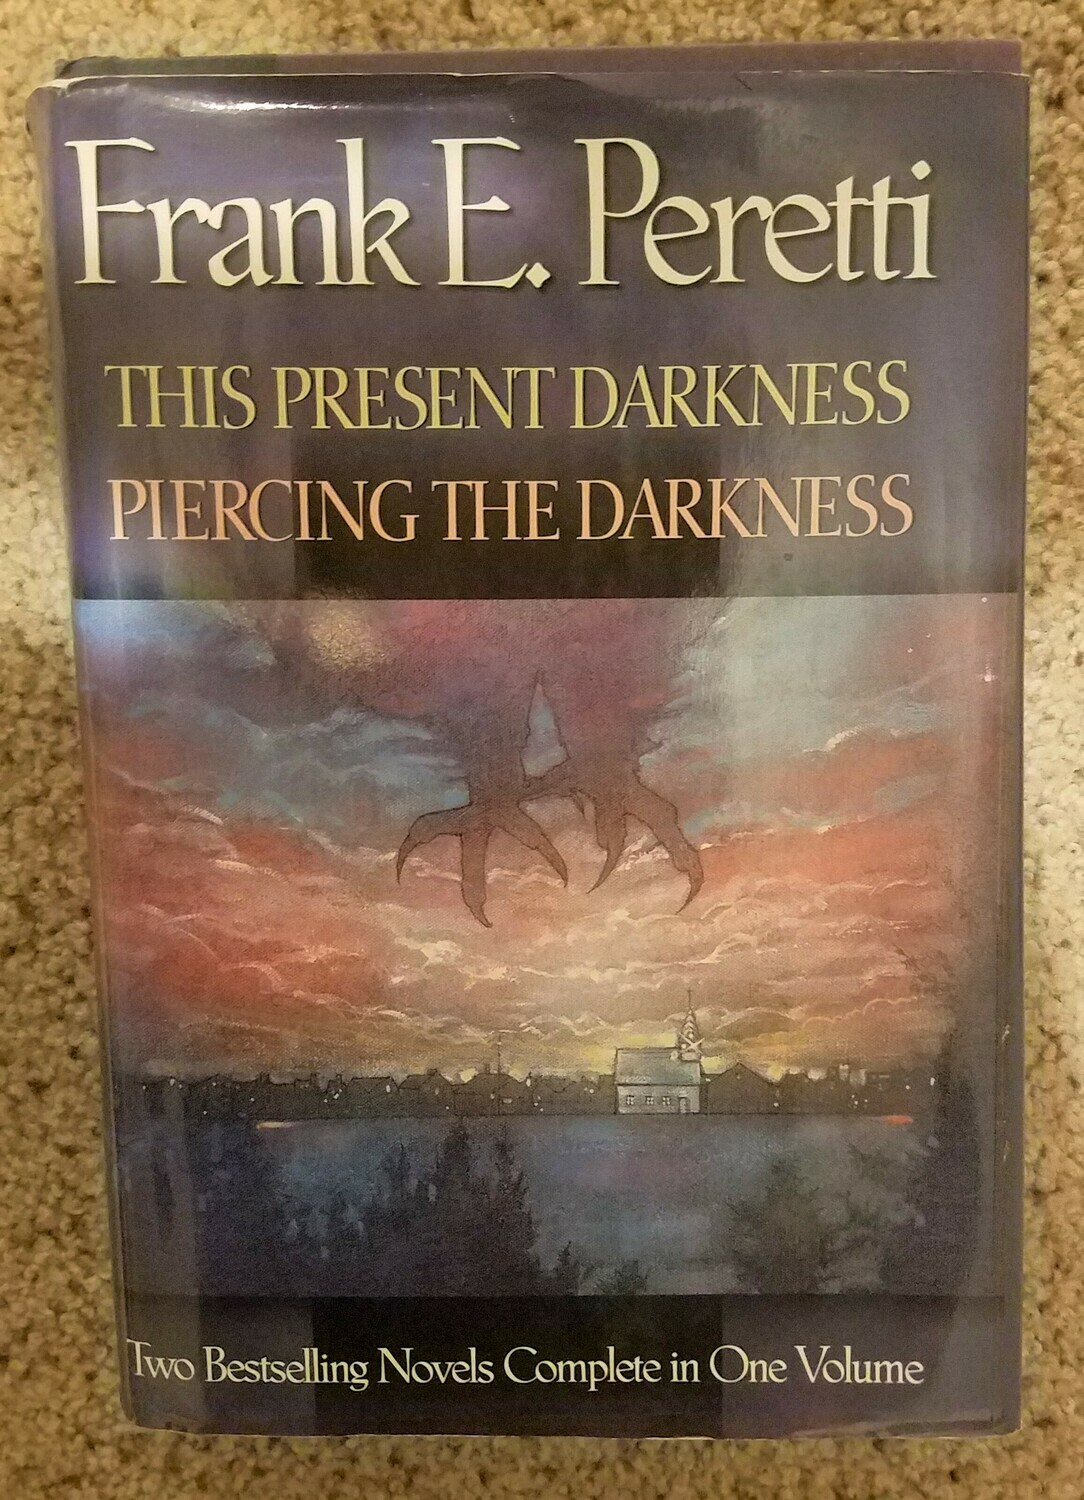 This Present Darkness and Piercing the Darkness by Frank E. Peretti